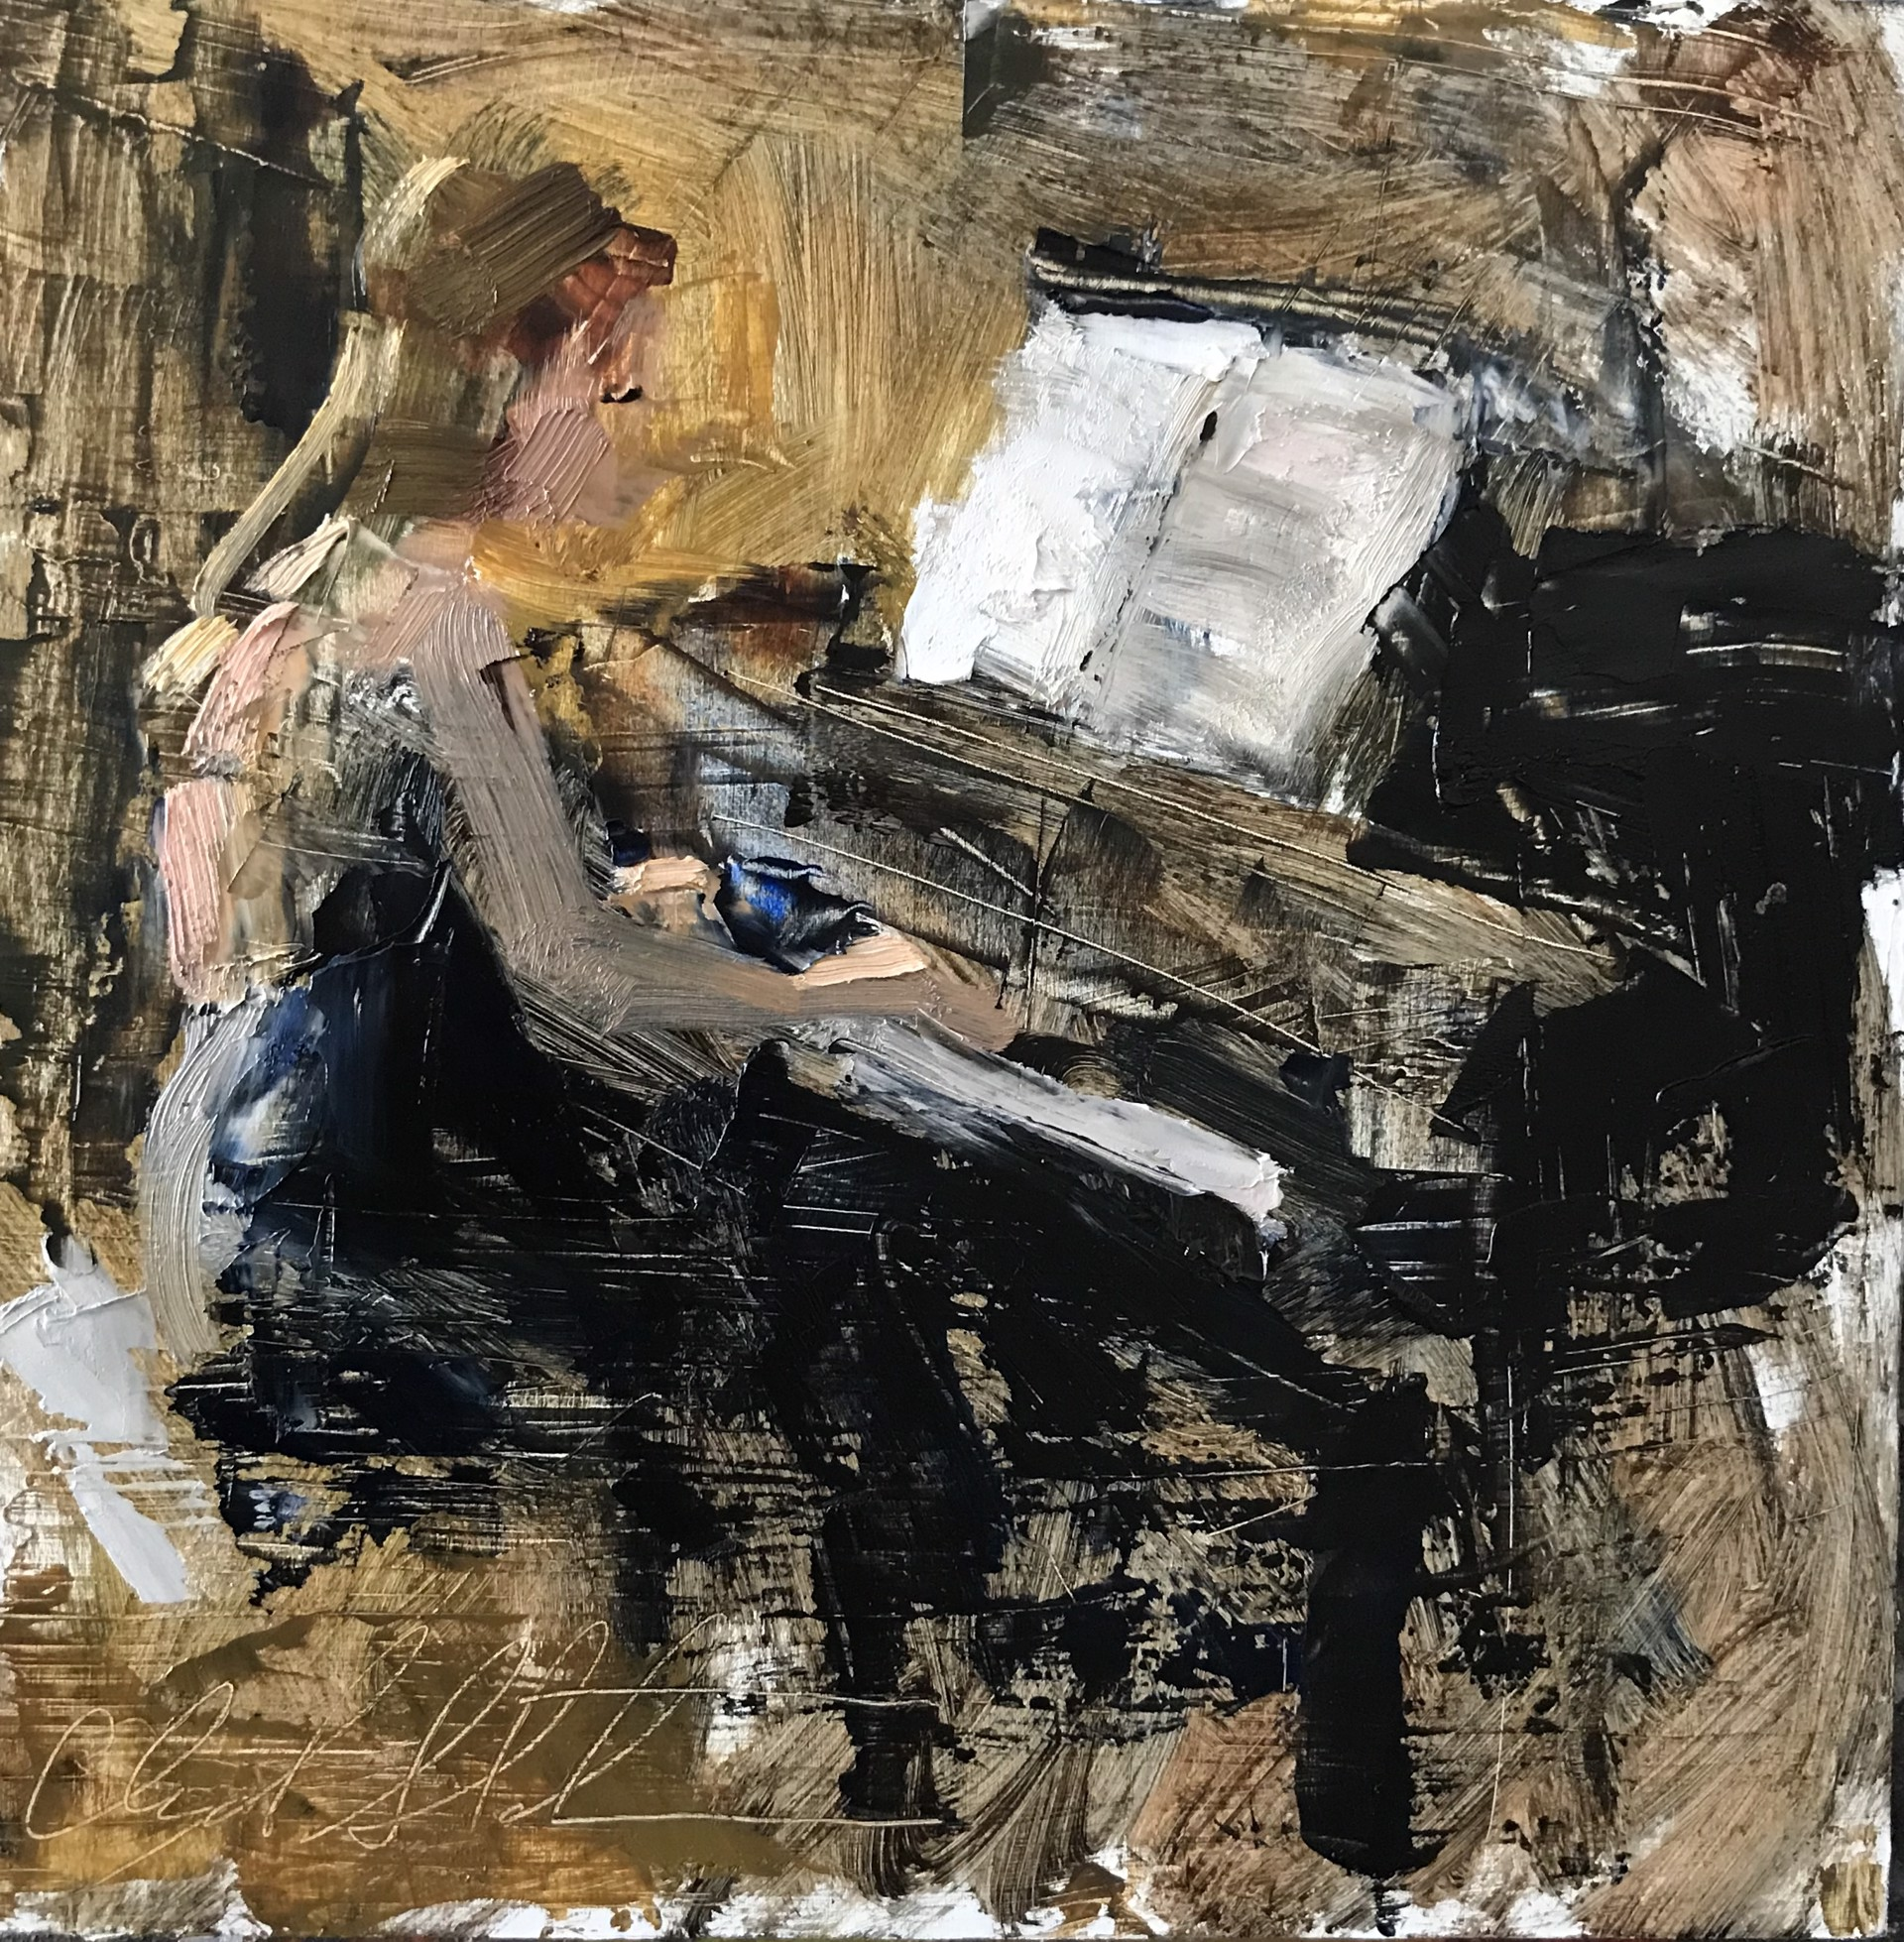 Piano Means Quiet by Clyde Steadman